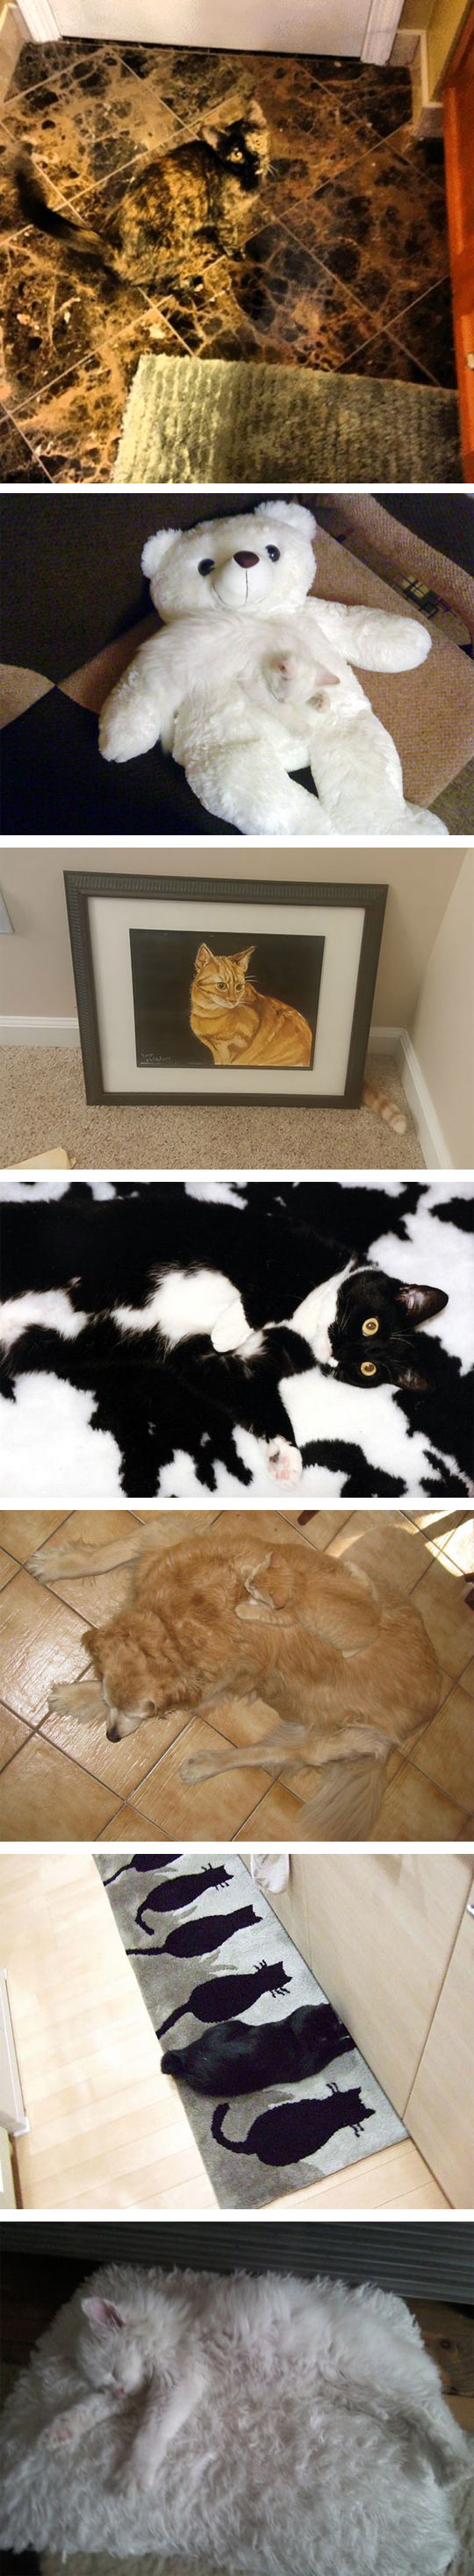 1funny-cat-hide-seek-floor